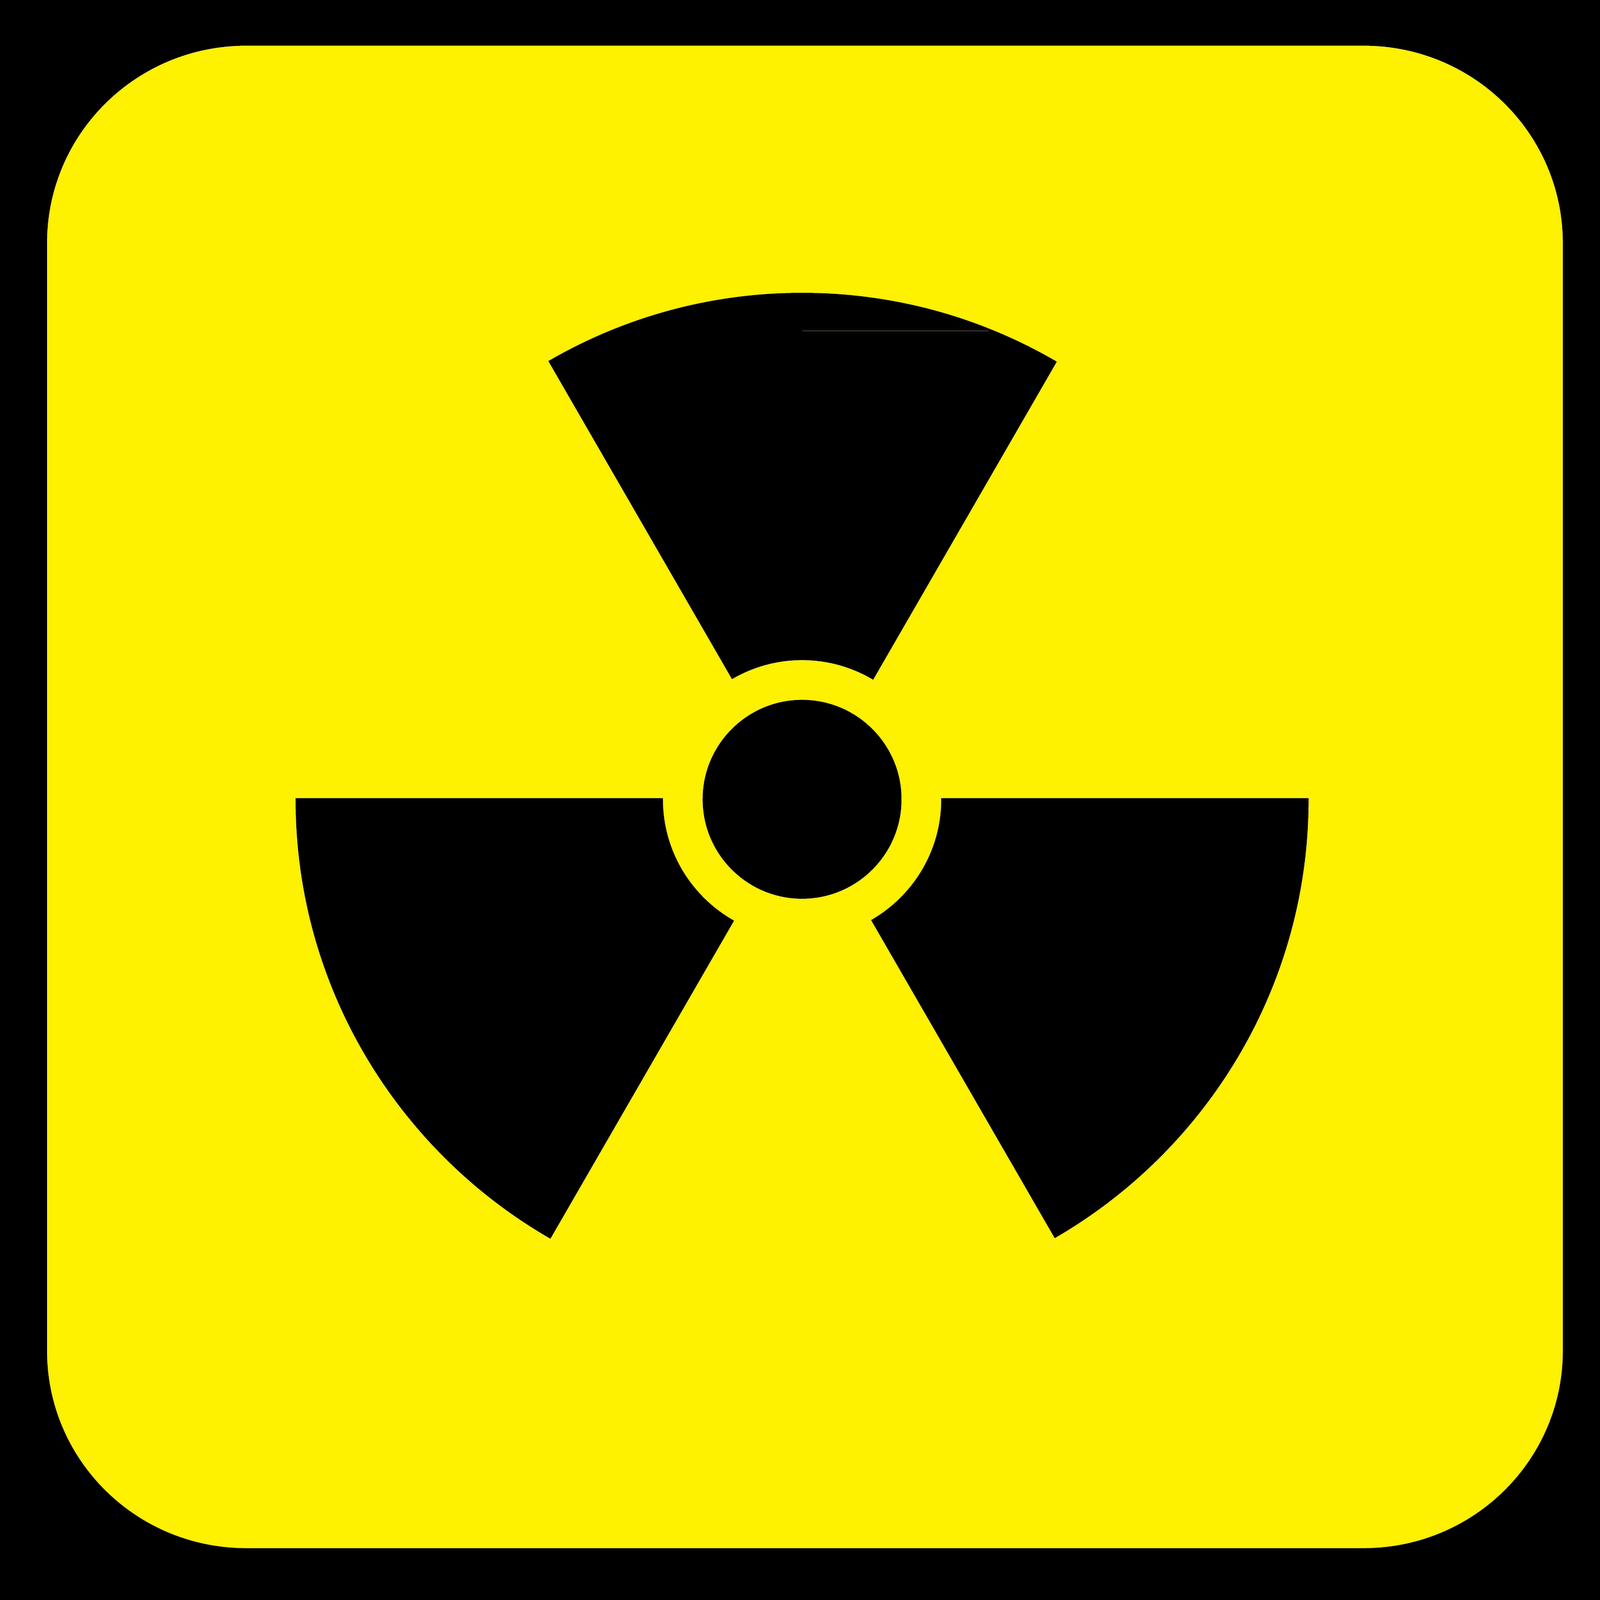 logos for nuclear energy symbol hd clipart best clipart best clipartbest